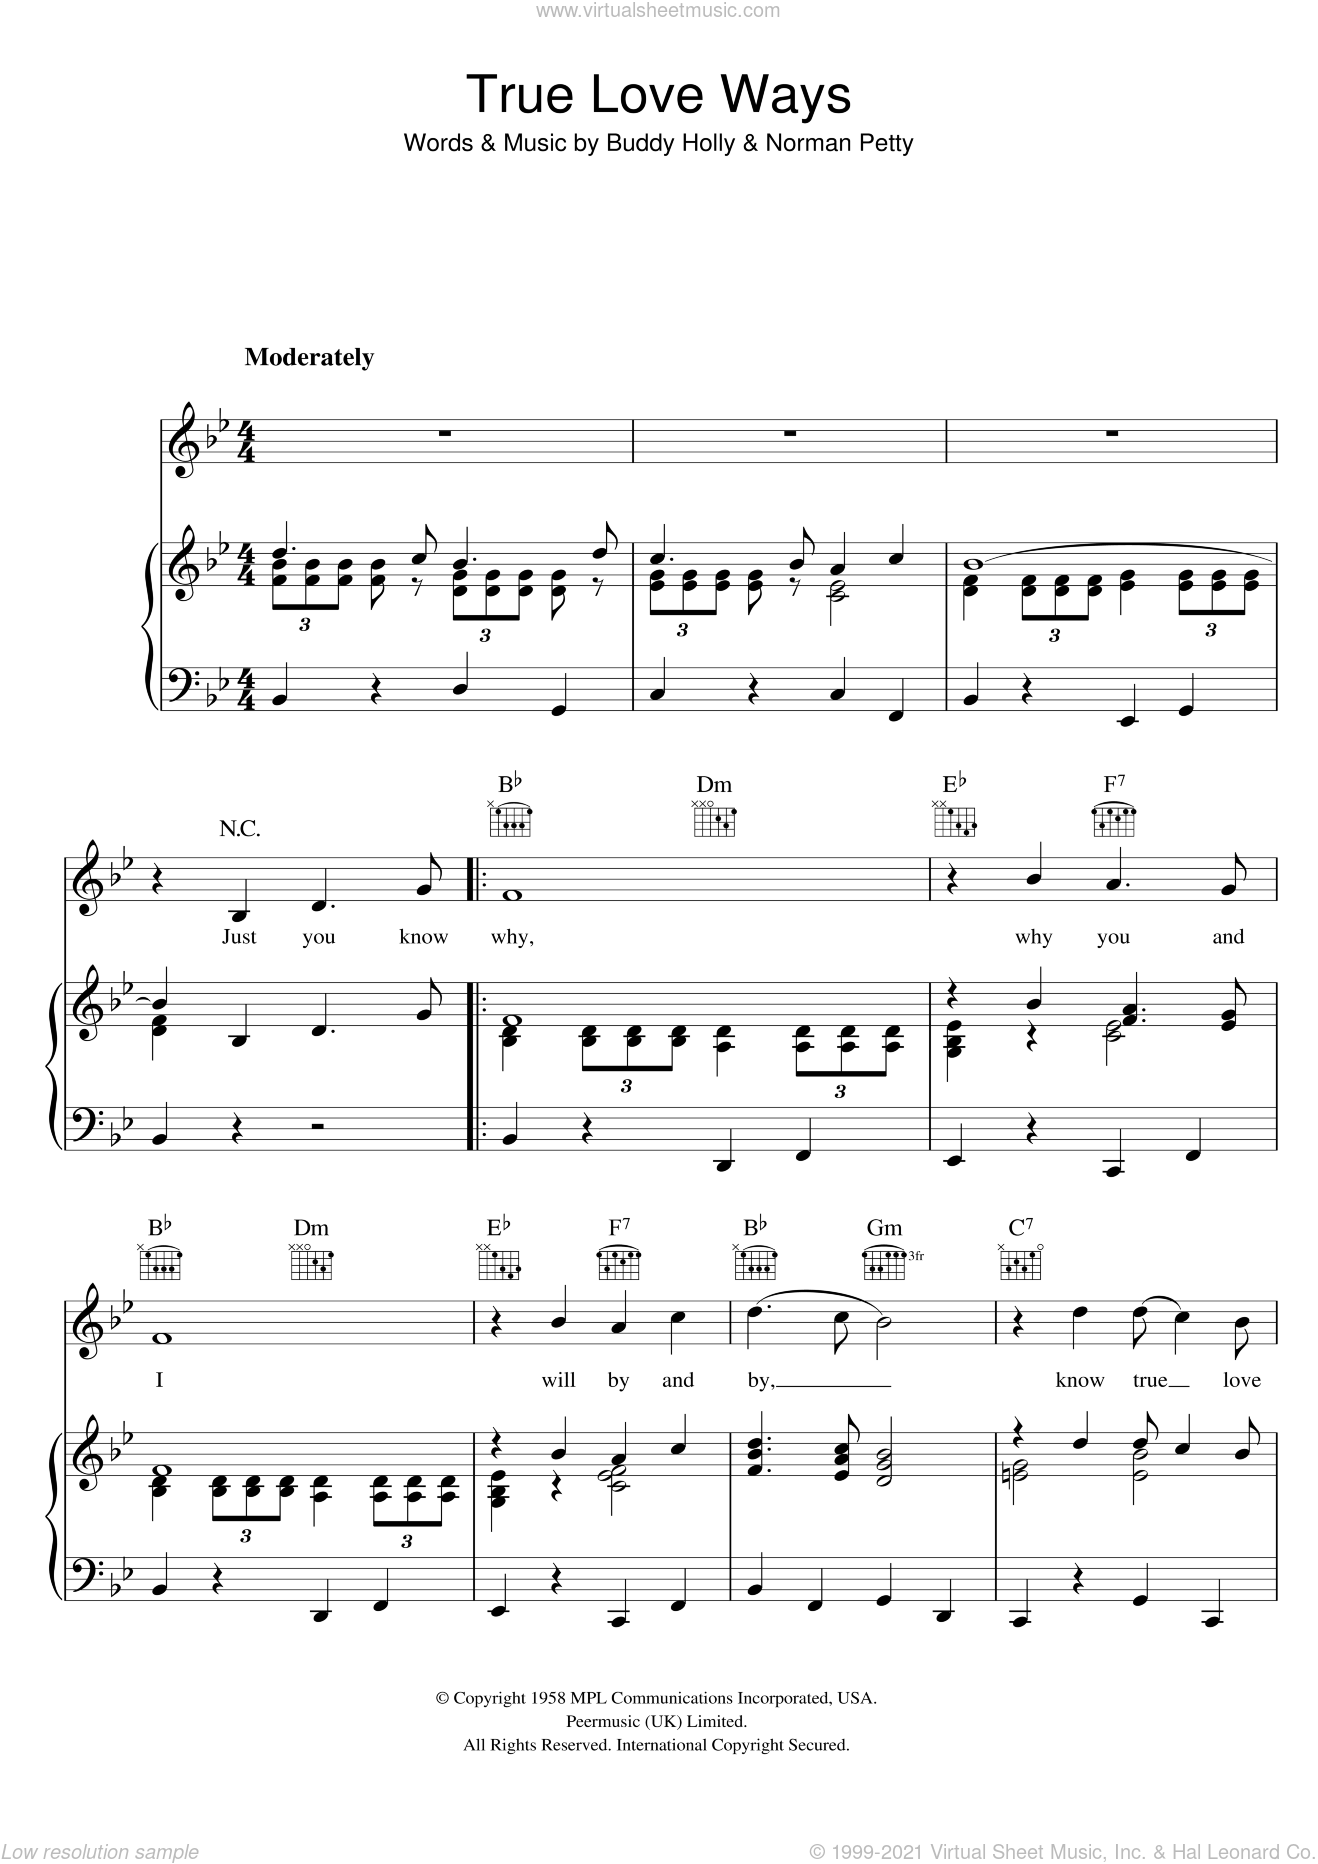 True Love Ways sheet music for voice, piano or guitar by Norman Petty and Buddy Holly. Score Image Preview.